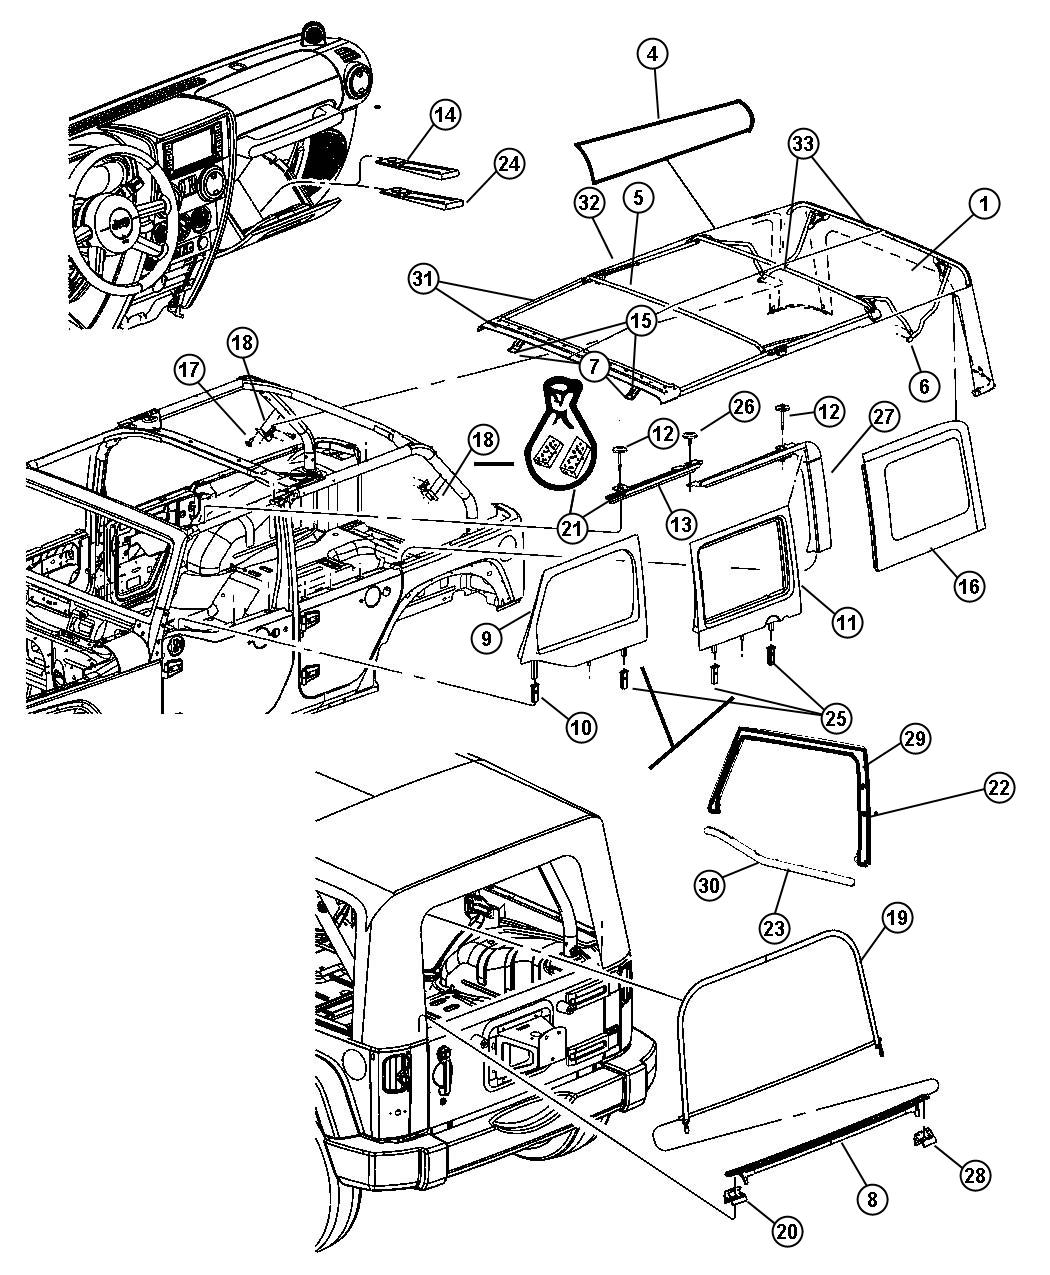 2003 Chevy Tracker Soft Top Parts Diagram. Chevy. Auto